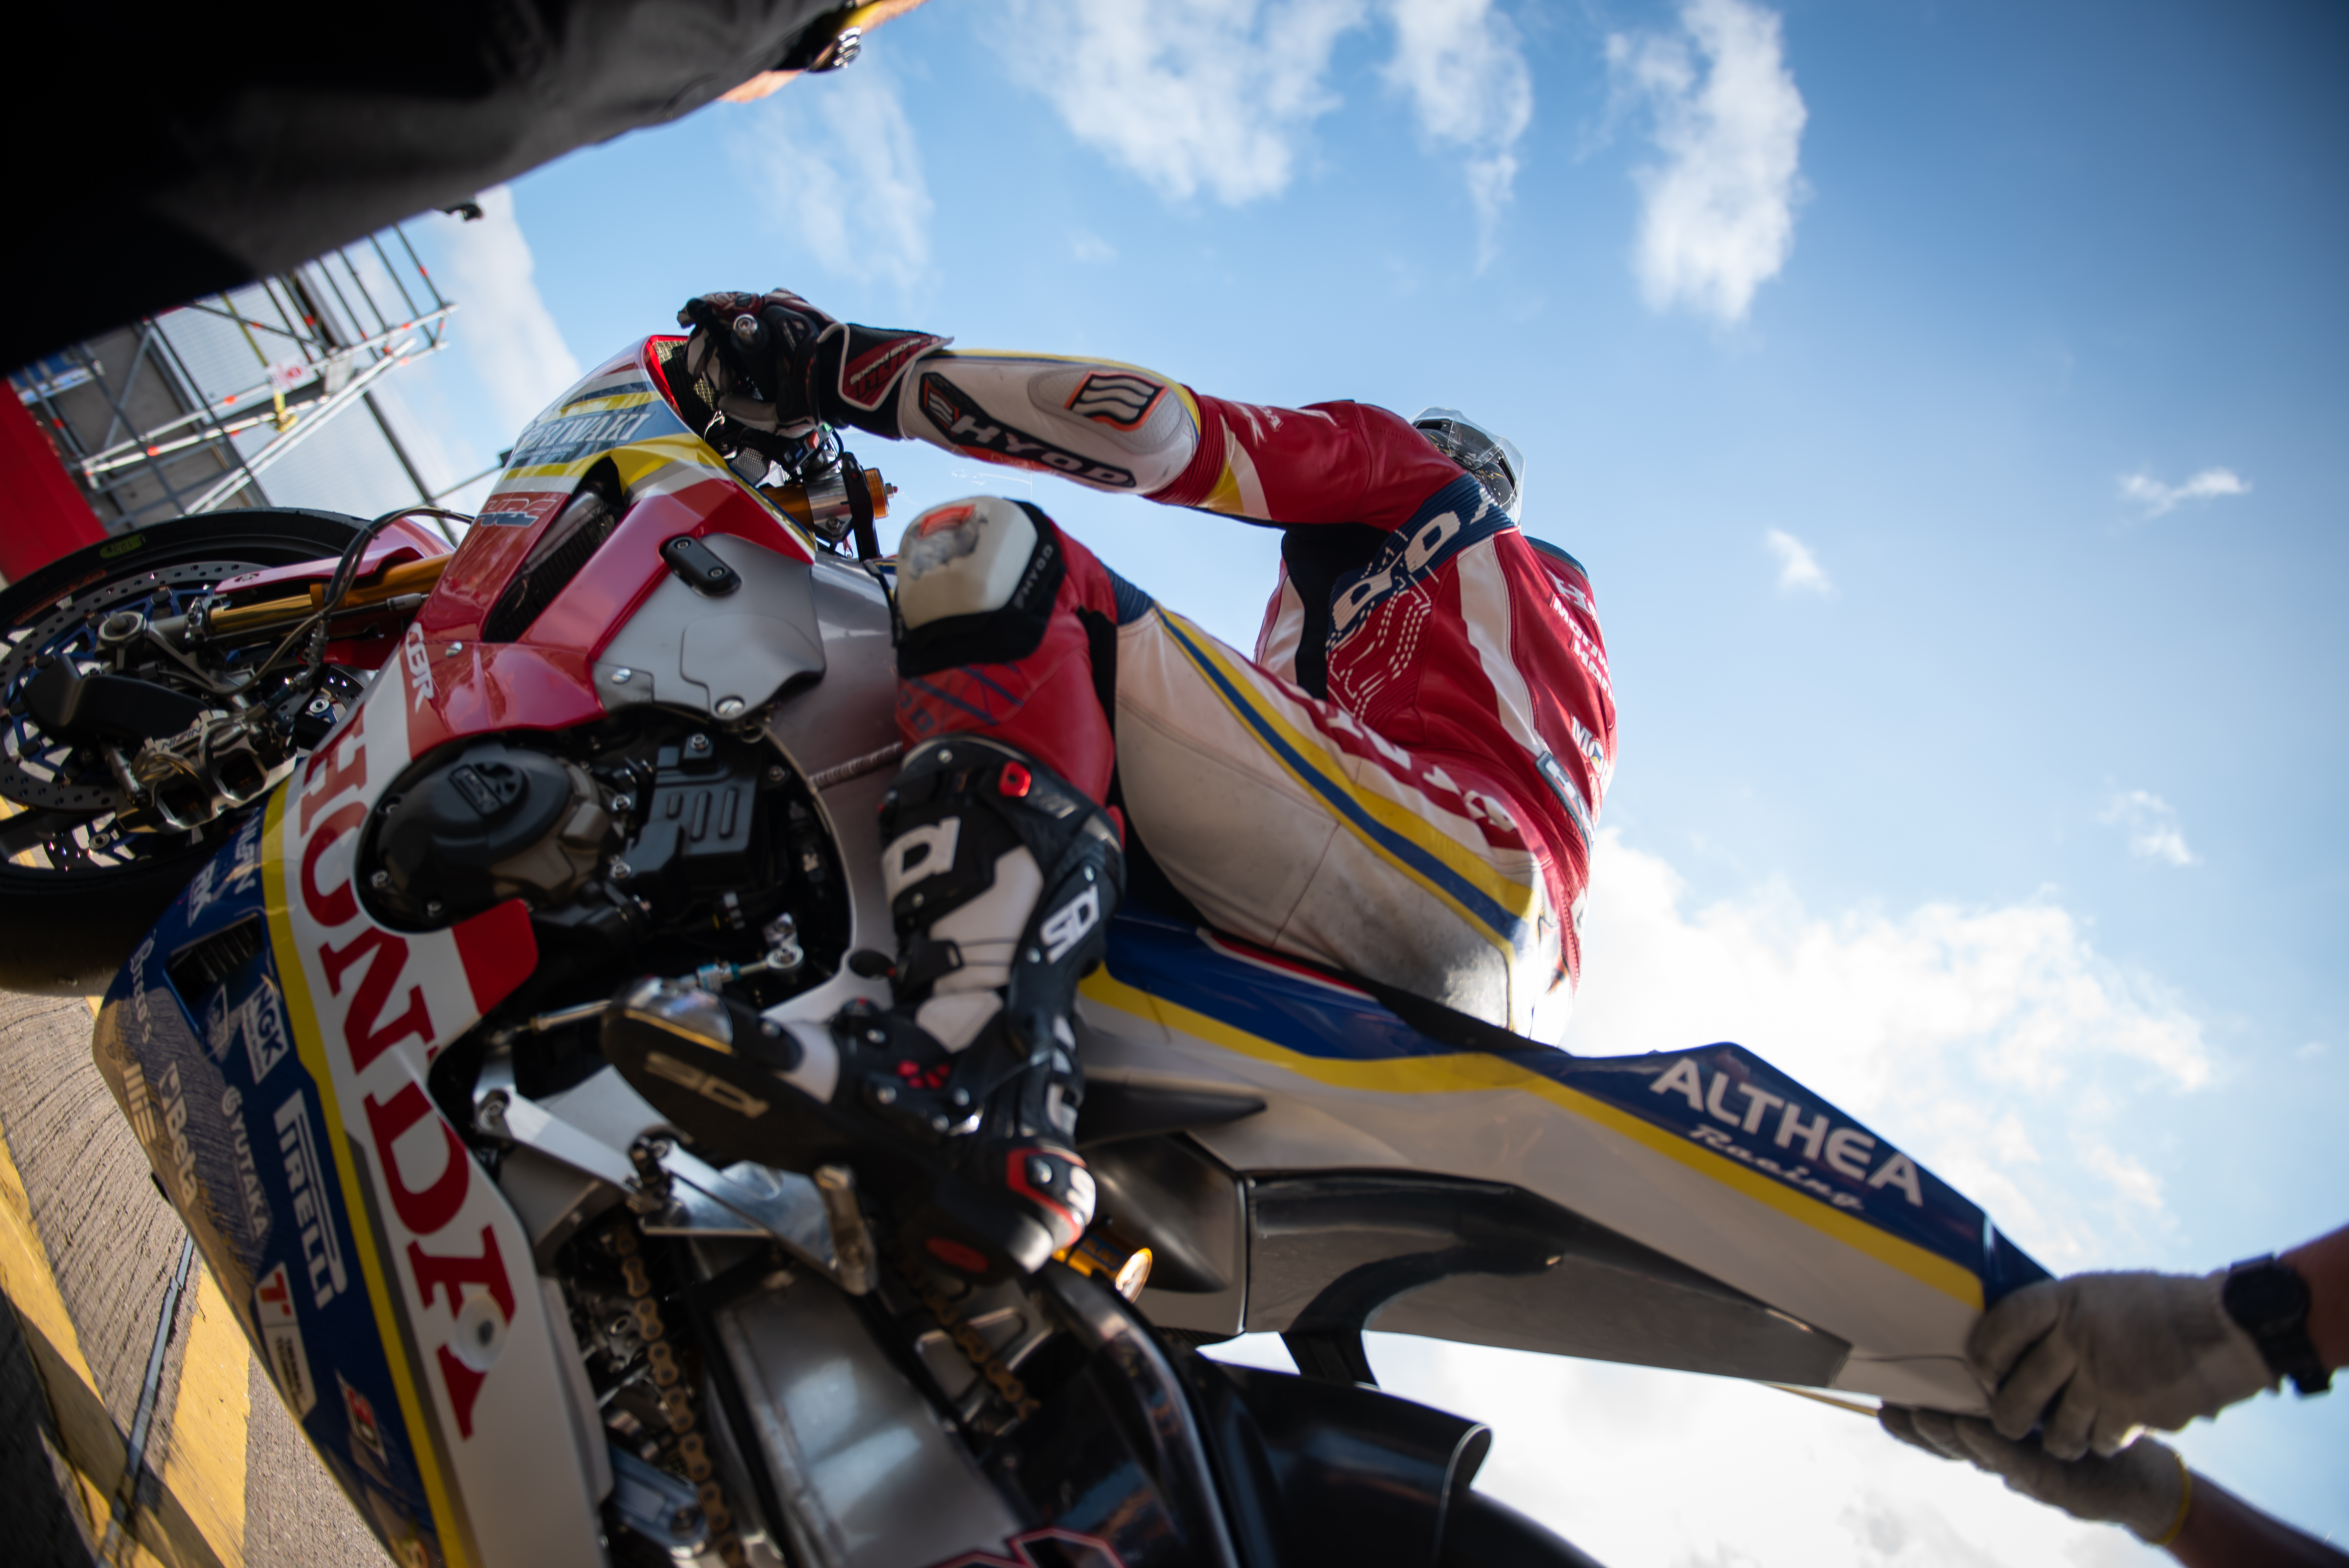 Moriwaki_Althea_Honda_Team_Donington_174